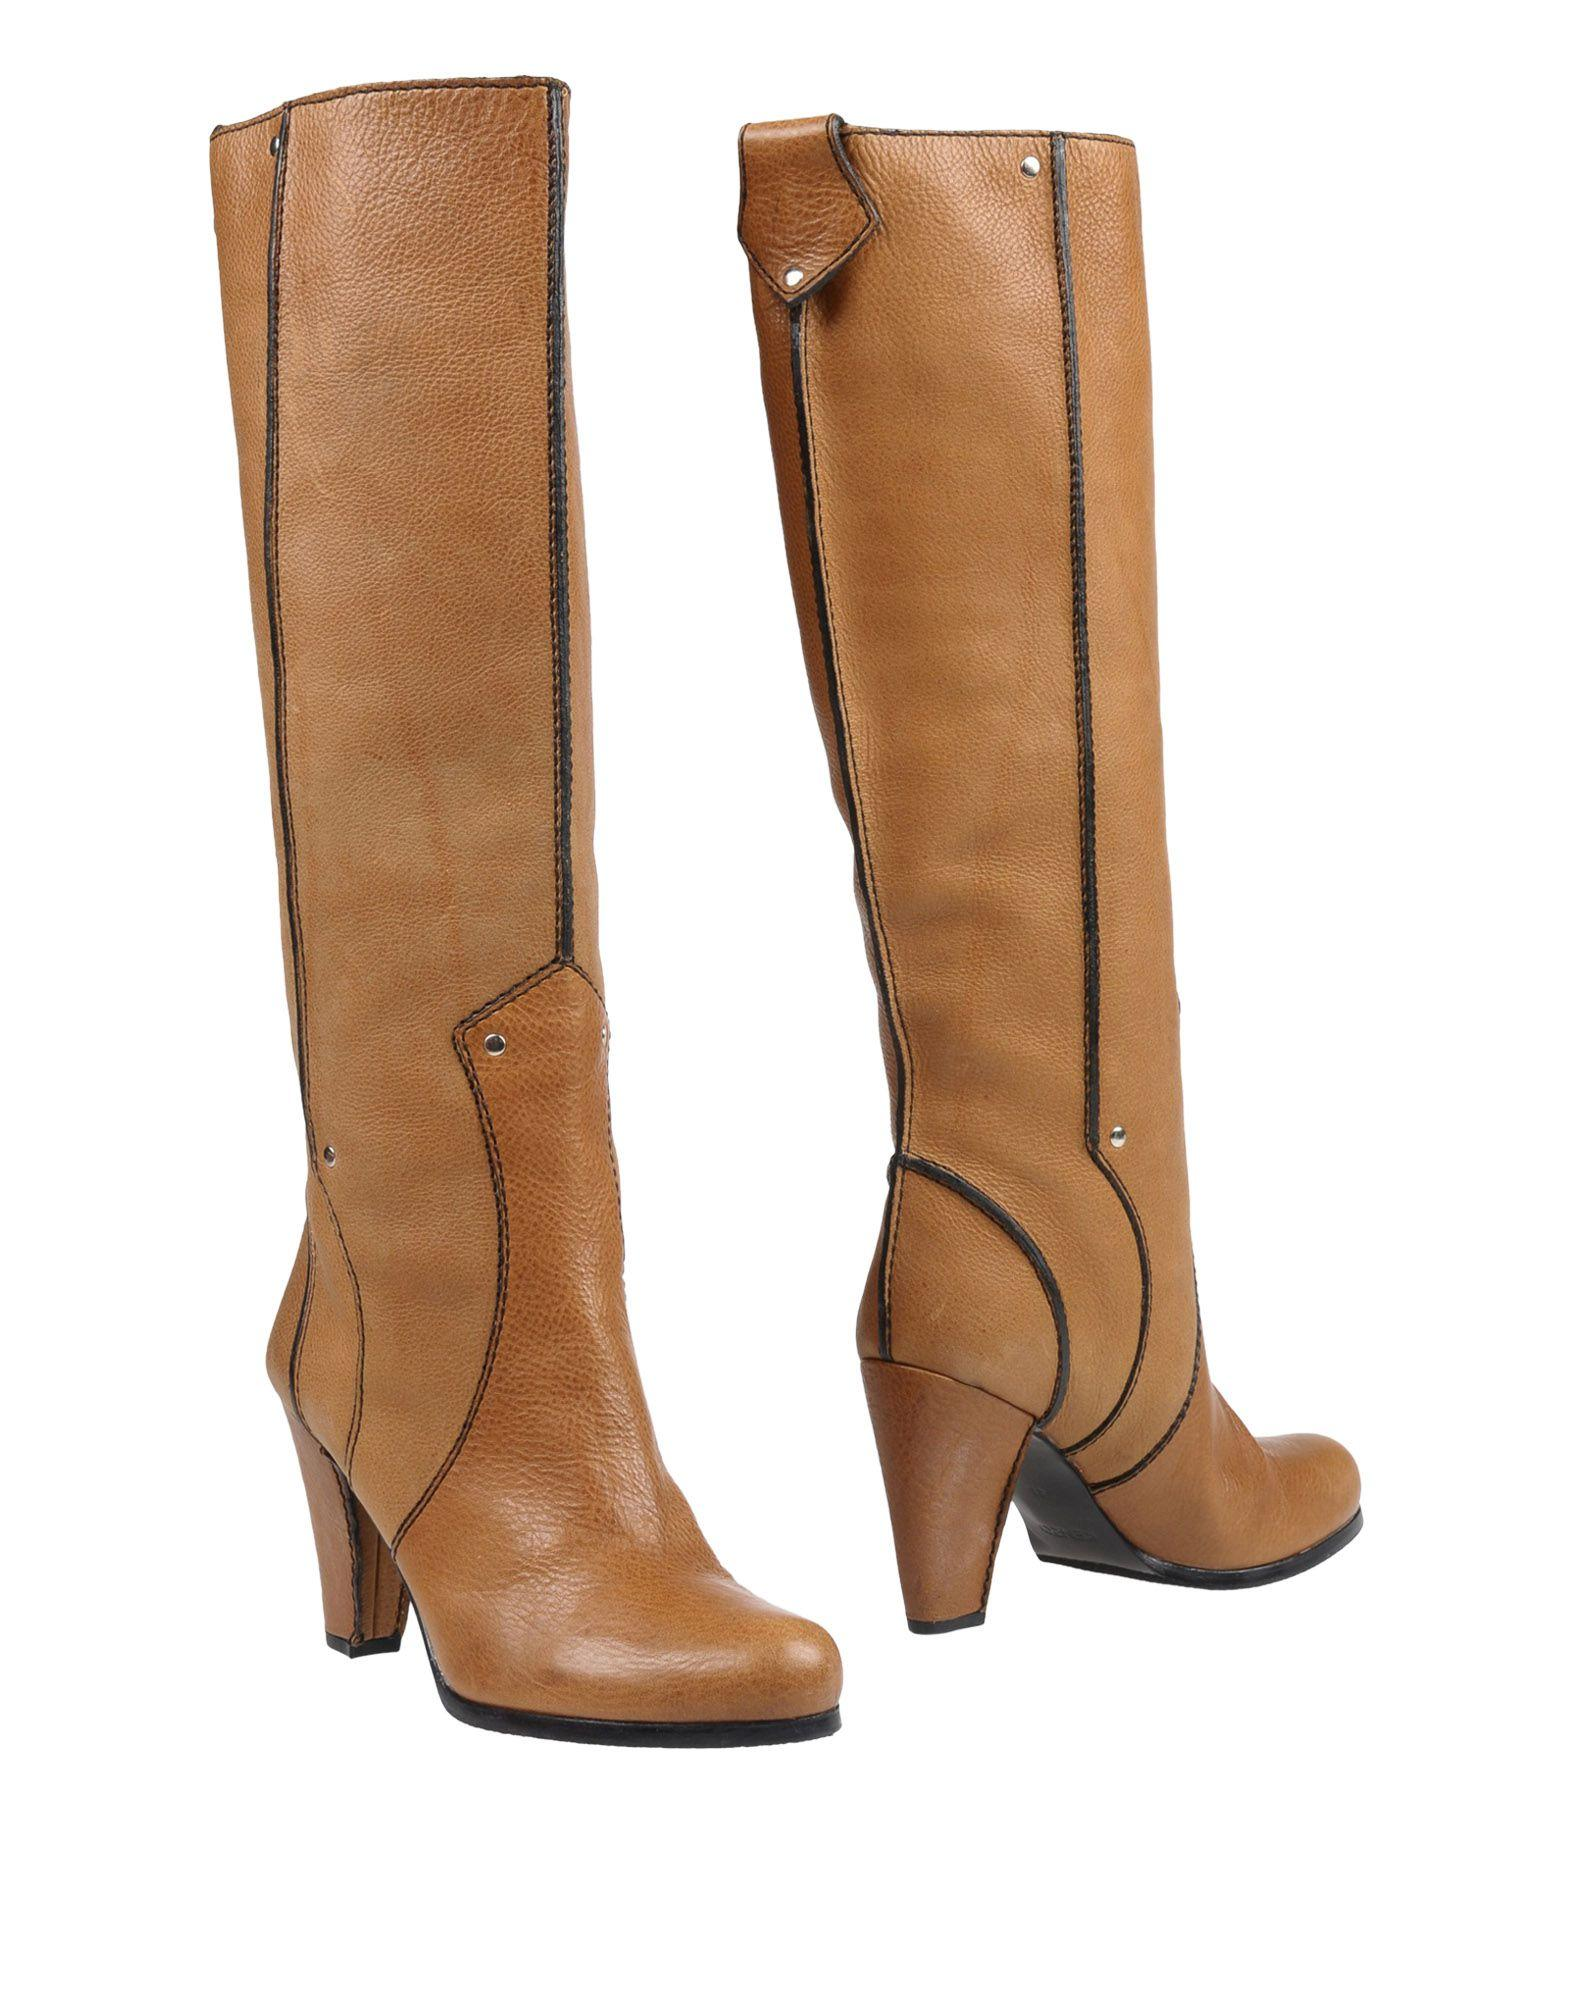 Kenzo Boots In Camel